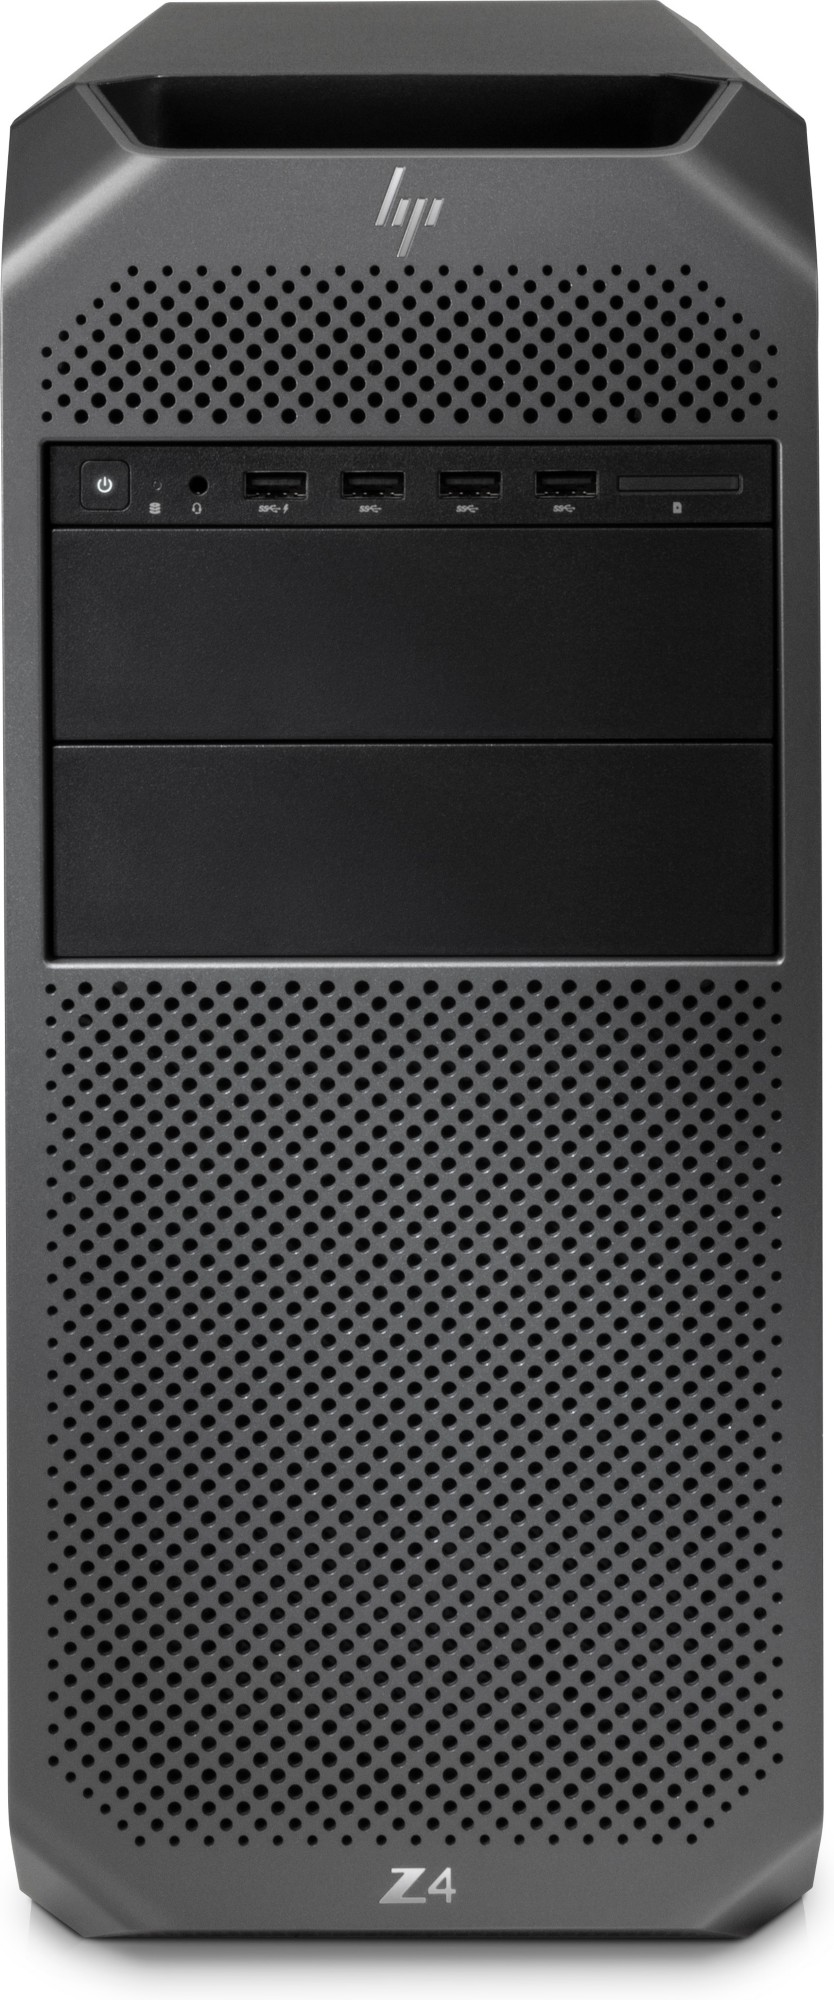 HP Z4 G4 9th gen Intel Core i7 i7-9800X 16 GB DDR4-SDRAM 512 GB SSD Black Mini Tower Workstation